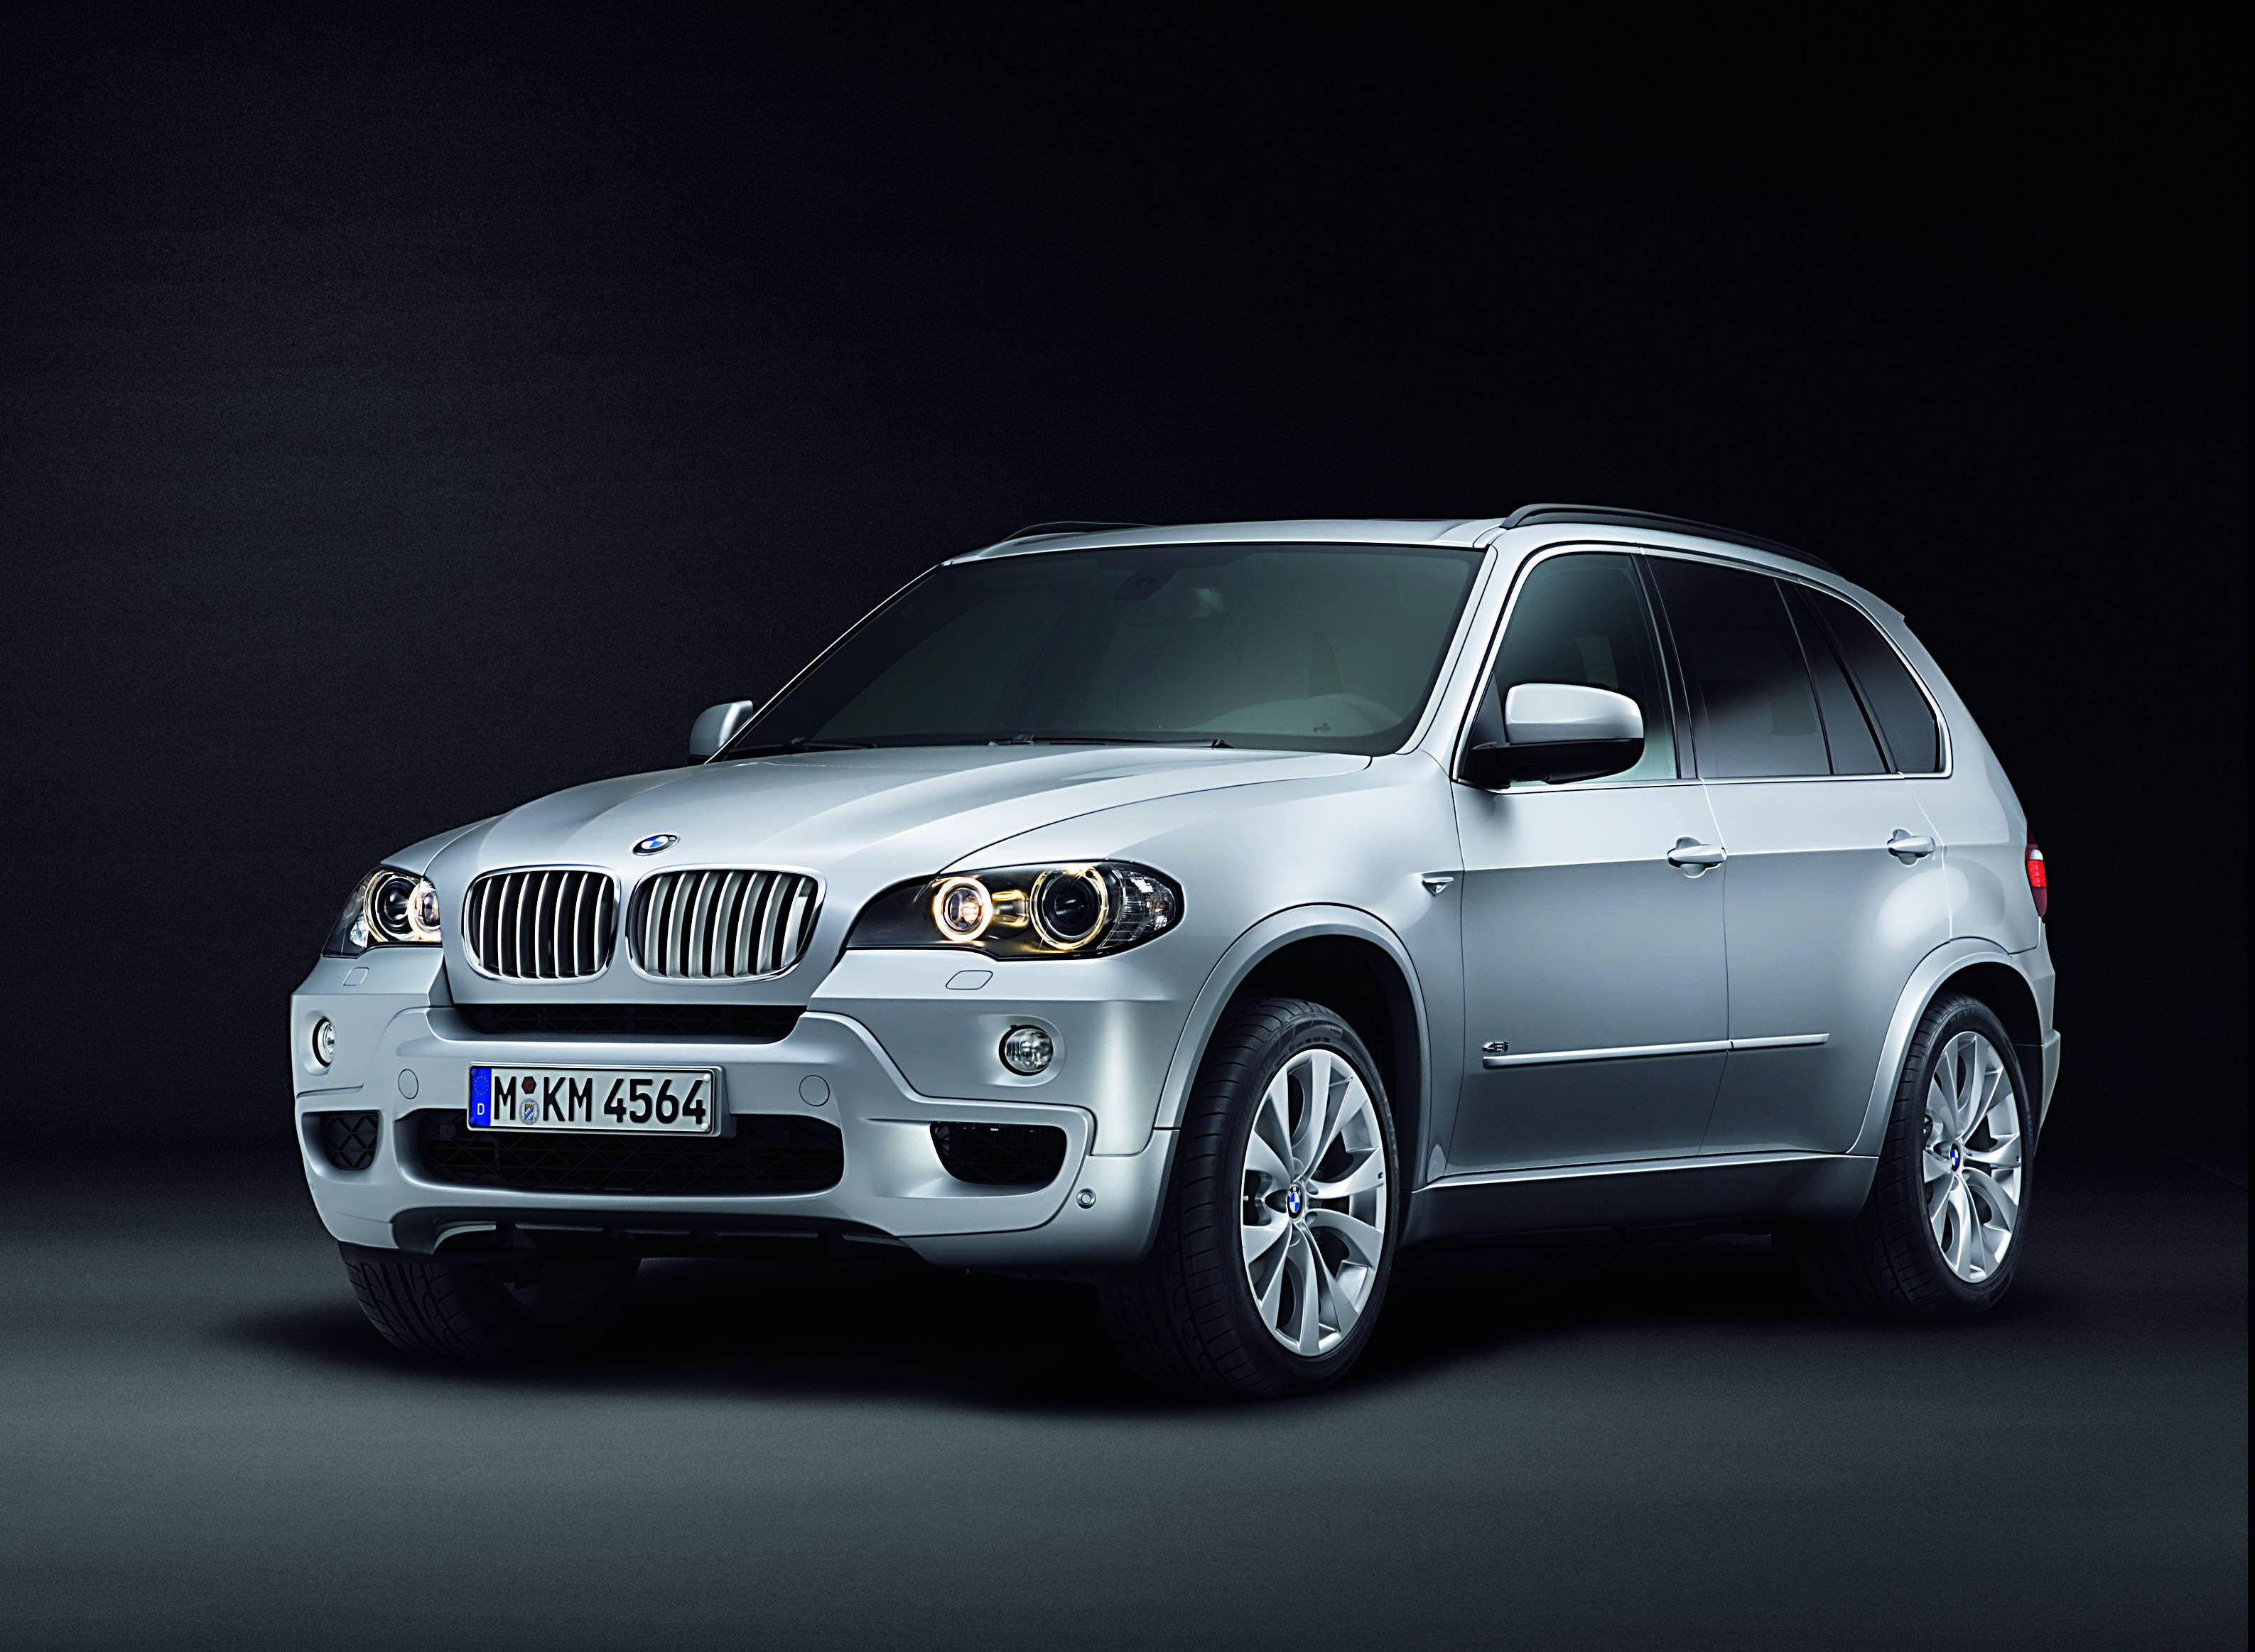 2007 bmw x5 m sport package review top speed. Black Bedroom Furniture Sets. Home Design Ideas